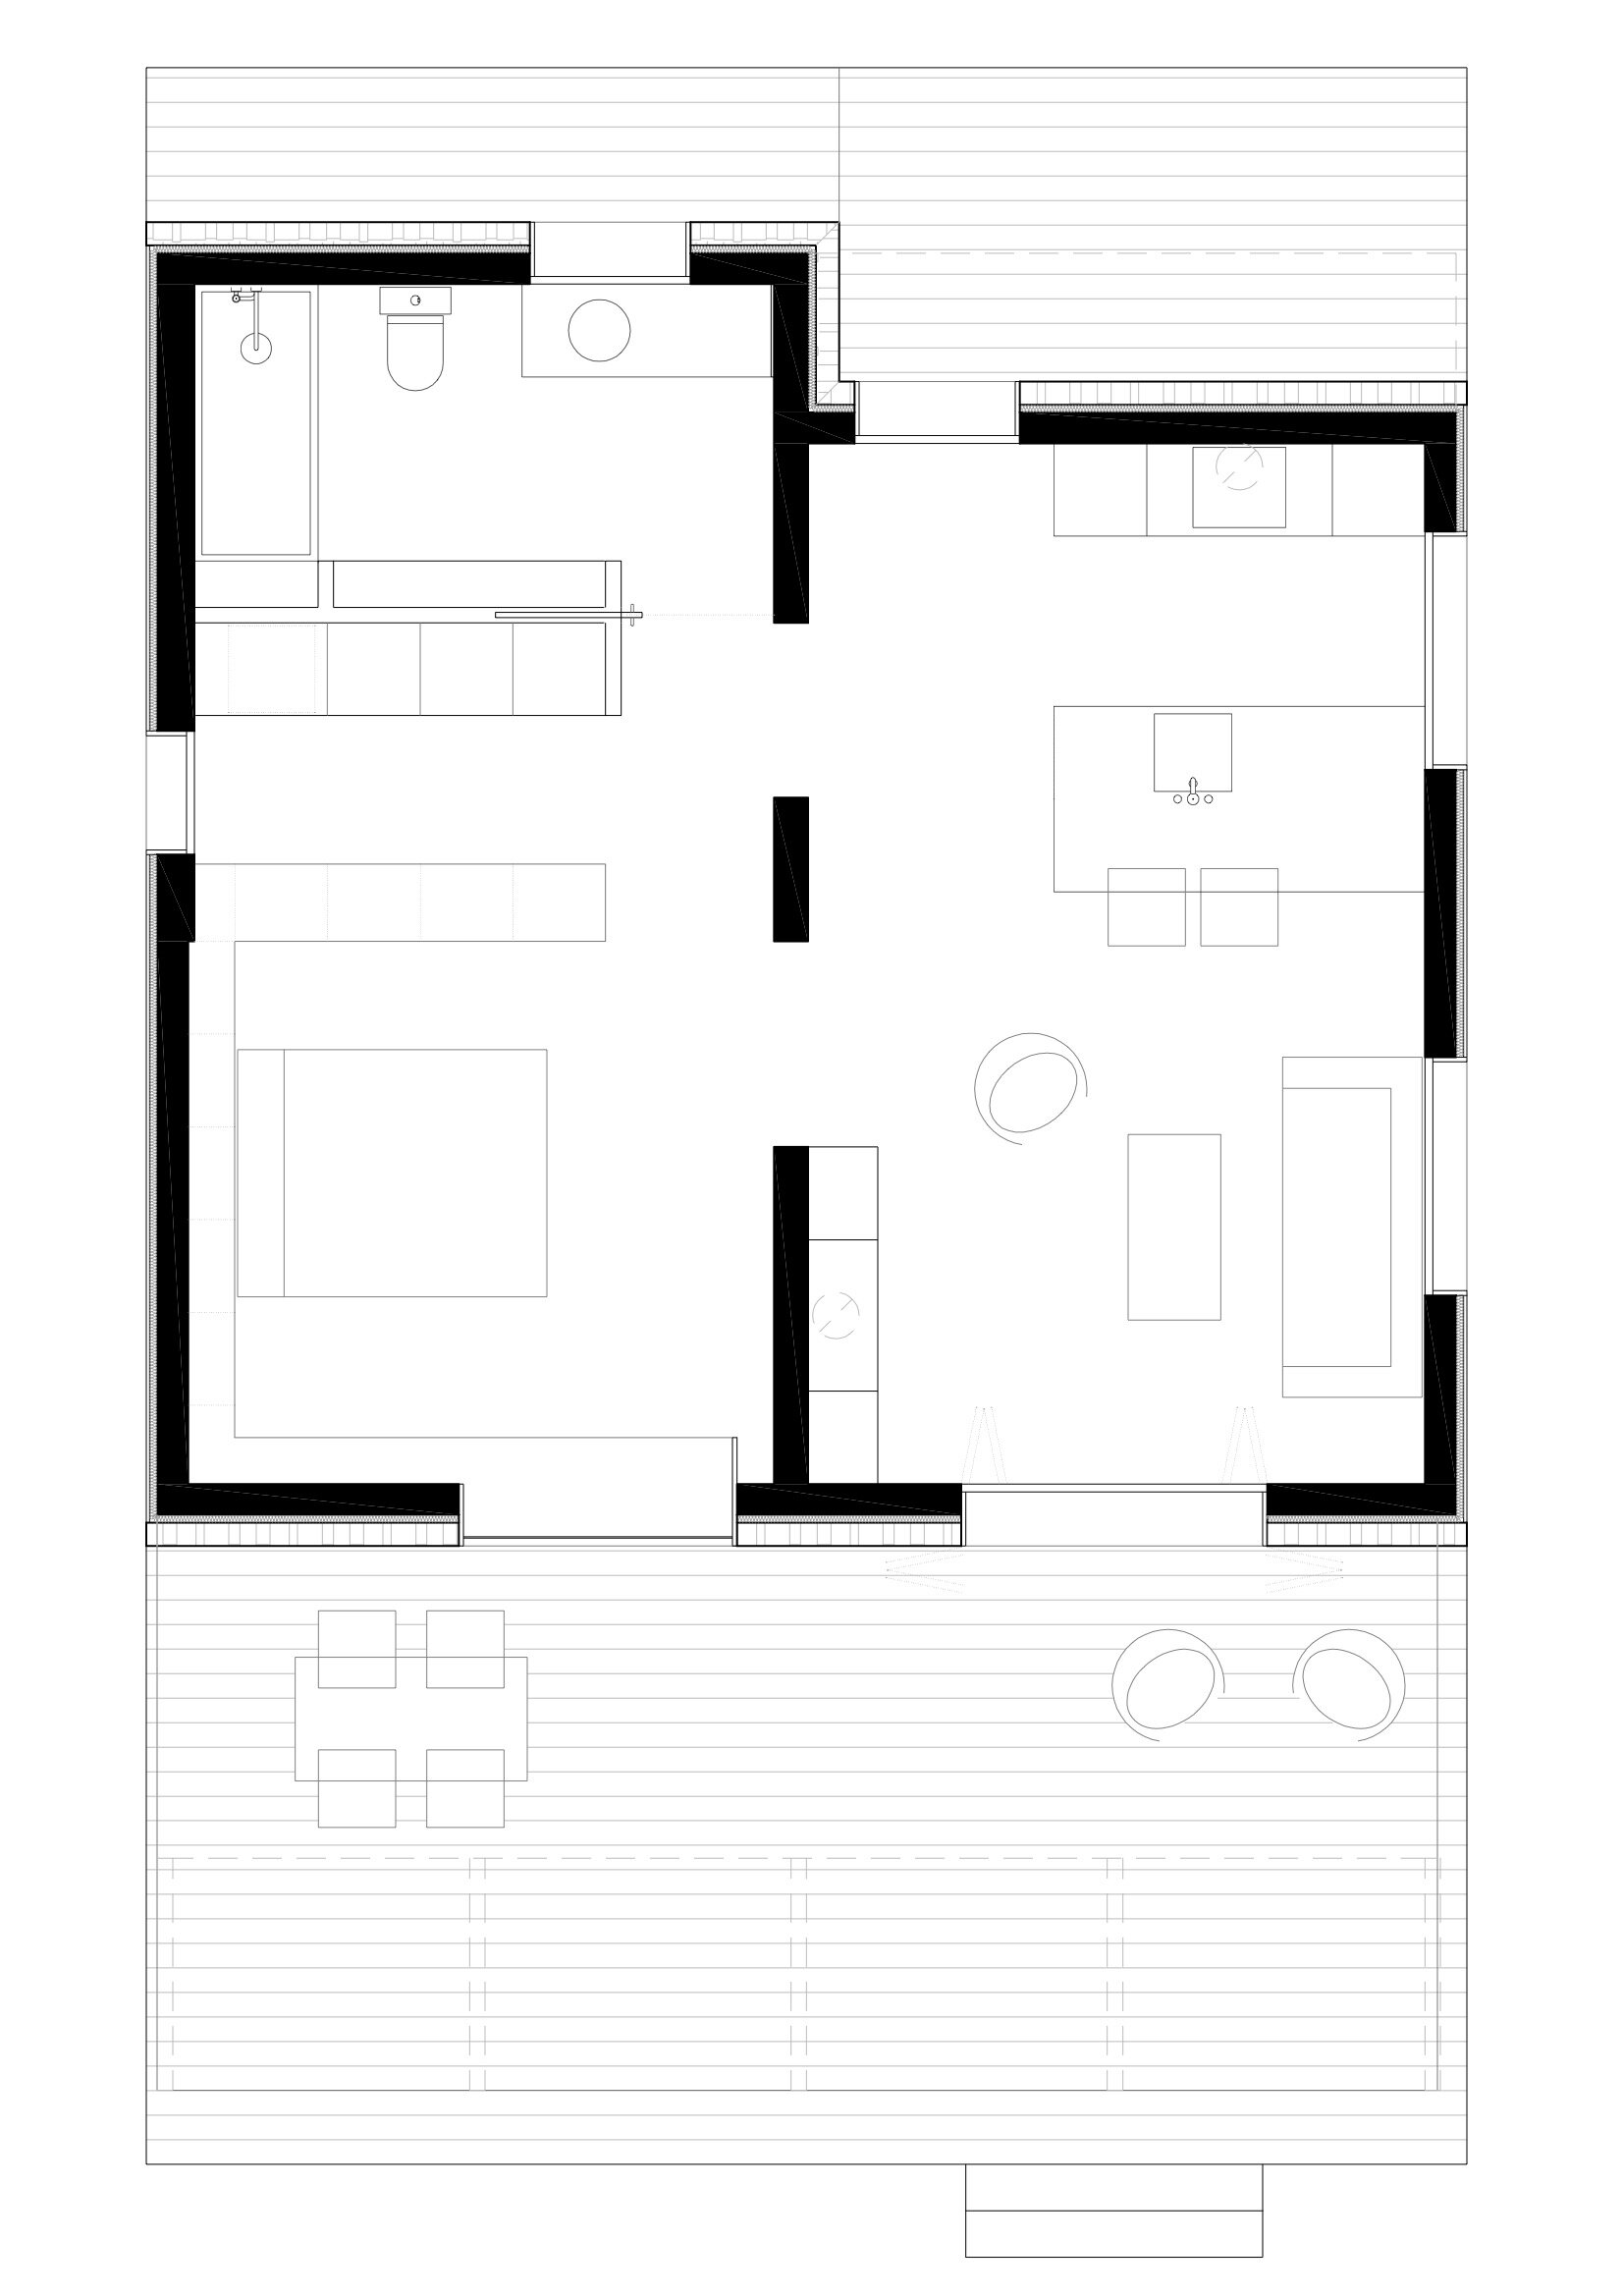 Mountain Guest House - Small House - Dom Architecture - Barcelona - Floor Plan - Humble Homes